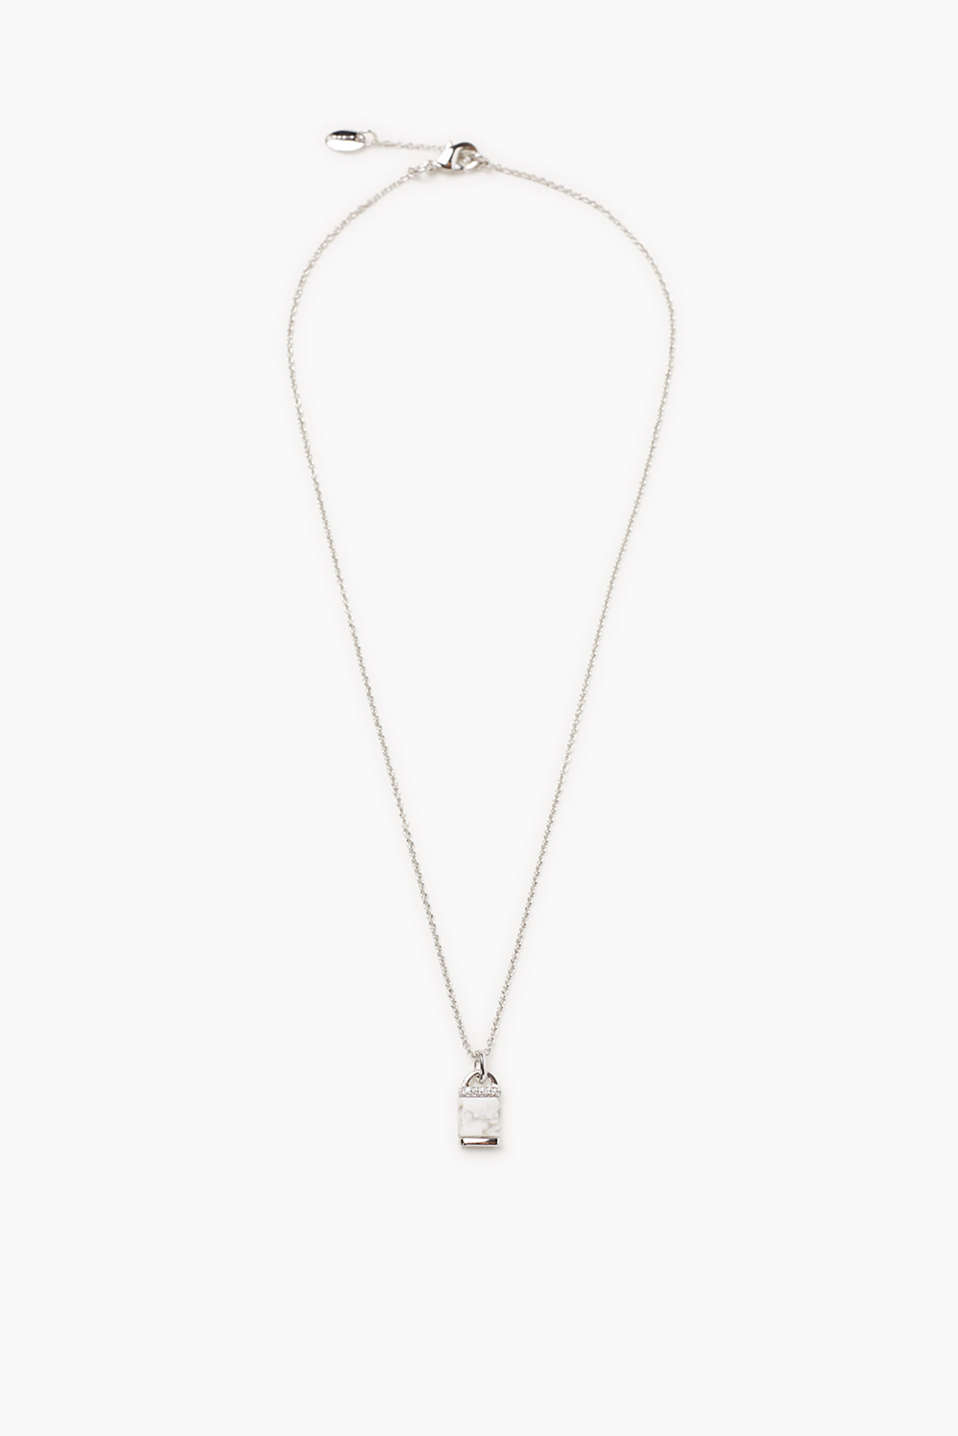 Fine, silver tone link chain with a natural stone in a trendy marble look